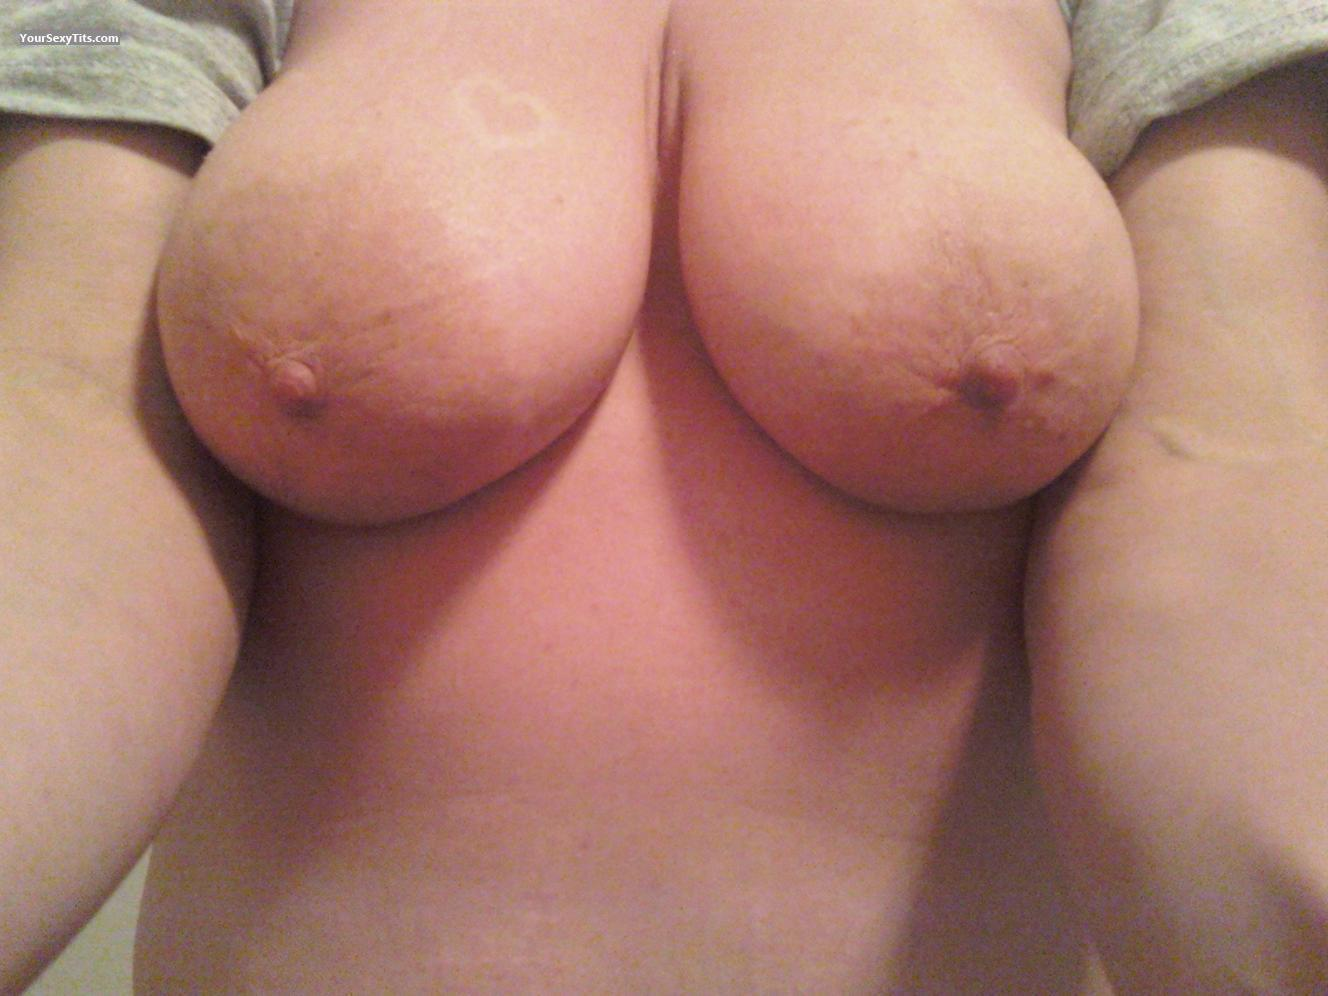 My Big Tits Selfie by 1litlhotie